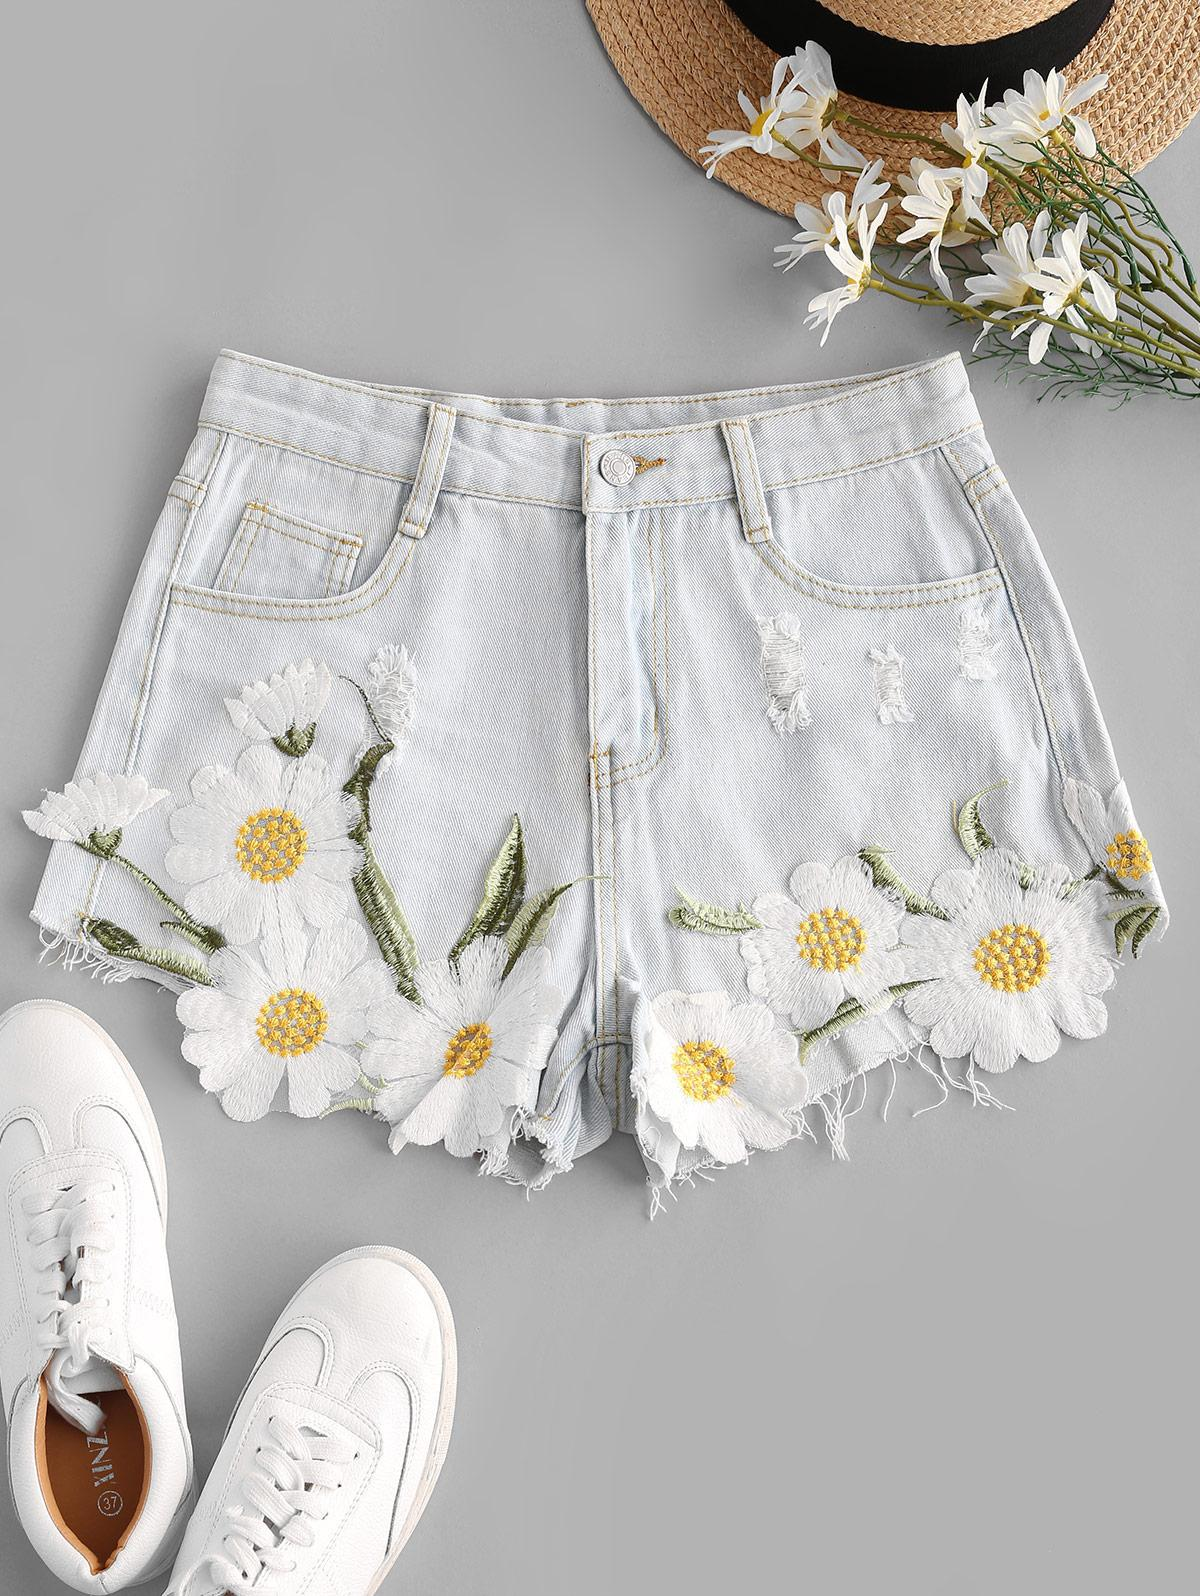 Daisy Embroidered Patched Distressed Frayed Denim Shorts